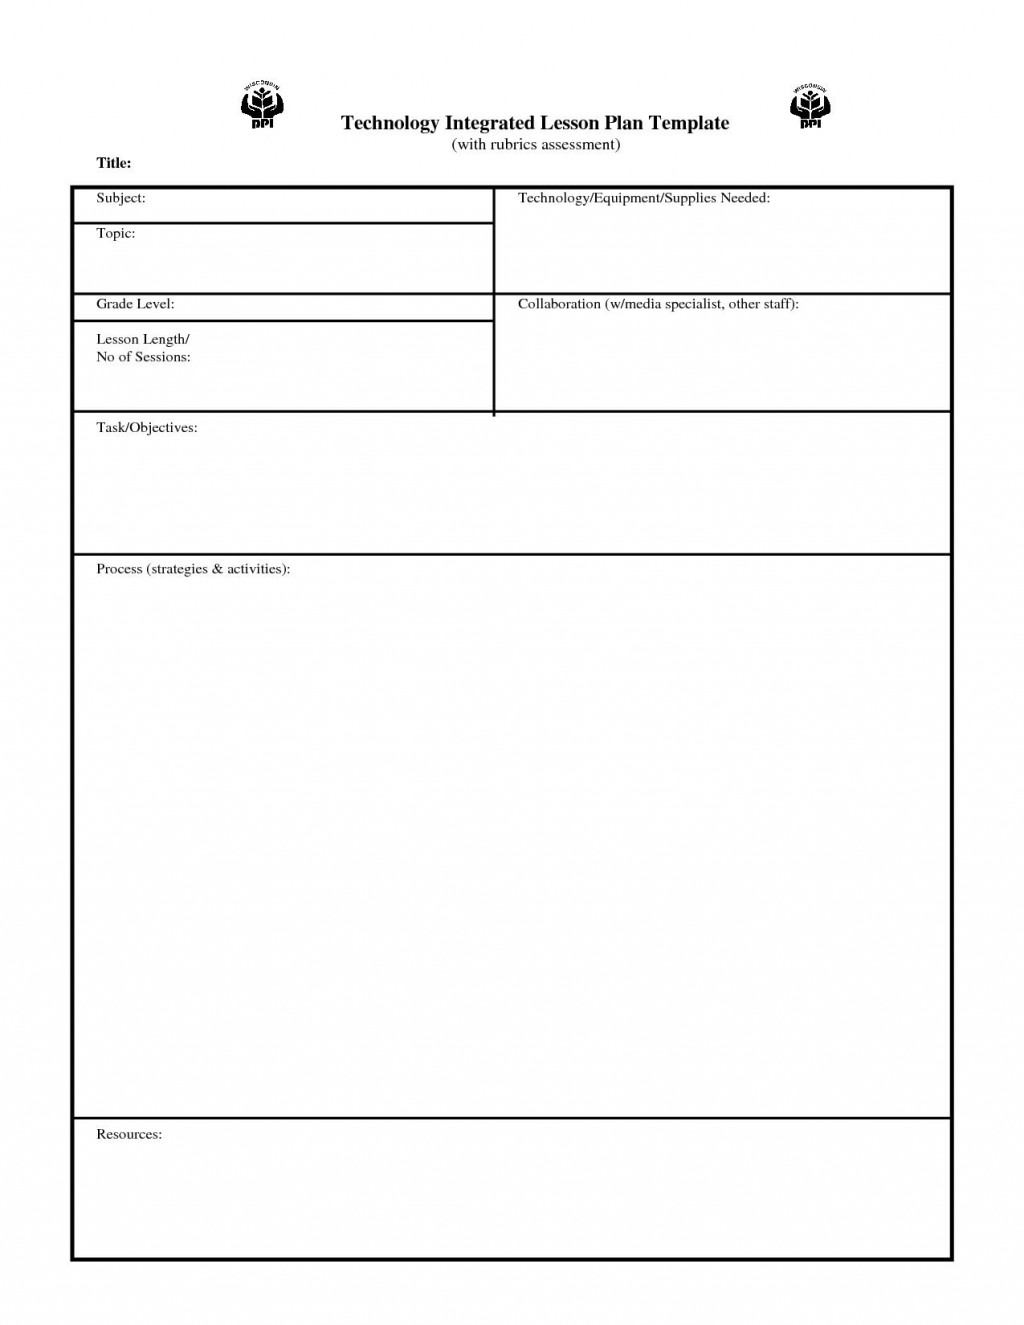 005 Formidable Physical Education Lesson Plan Template Photo  Templates Free Elementary CortlandLarge